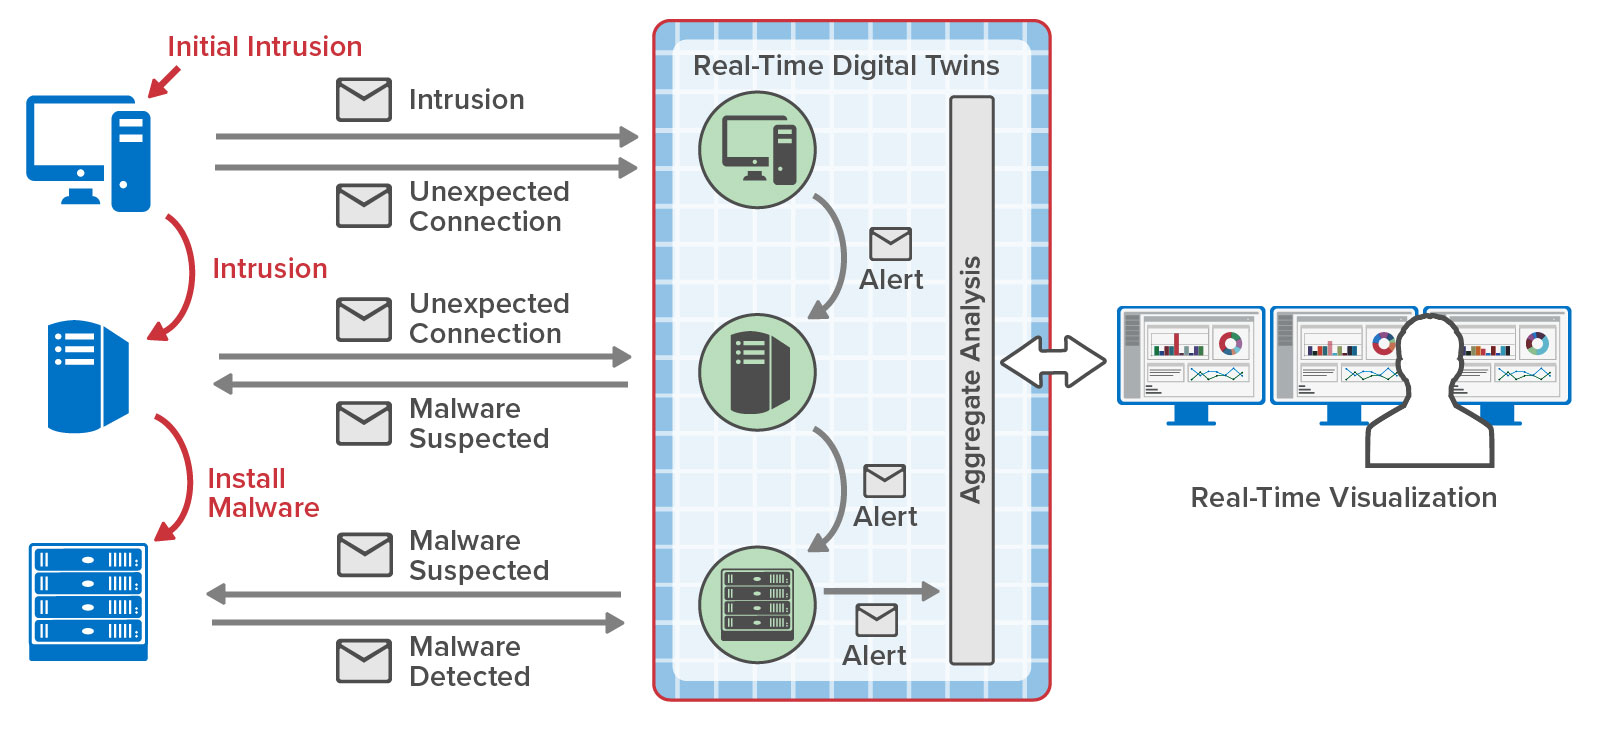 Example of mitigating a cyber kill chain using real-time digital twins